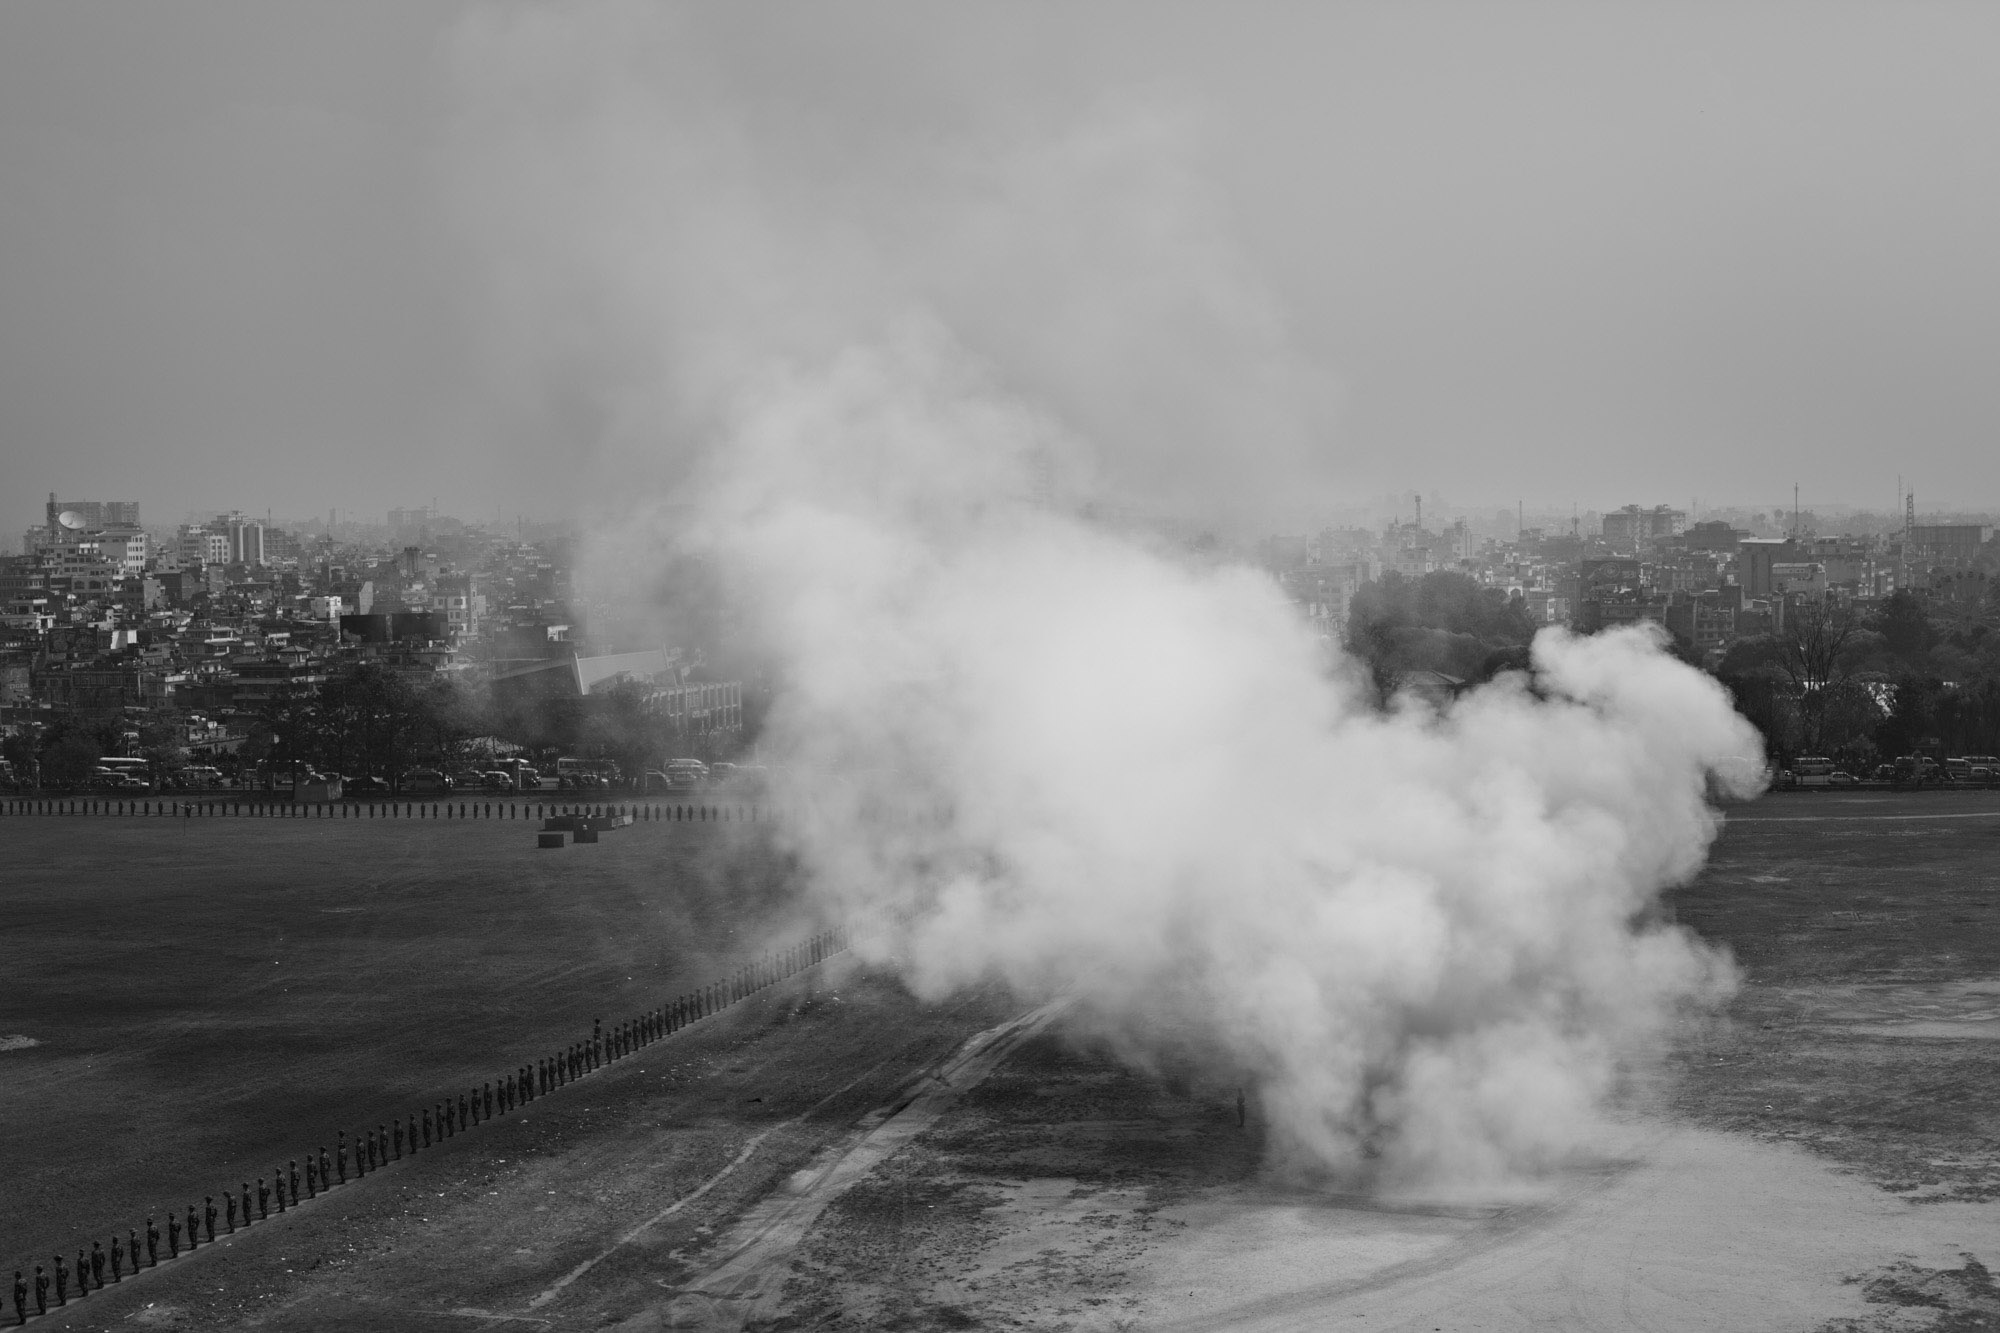 Smoke rises from canon fire during a military demonstration in Kathmandu.